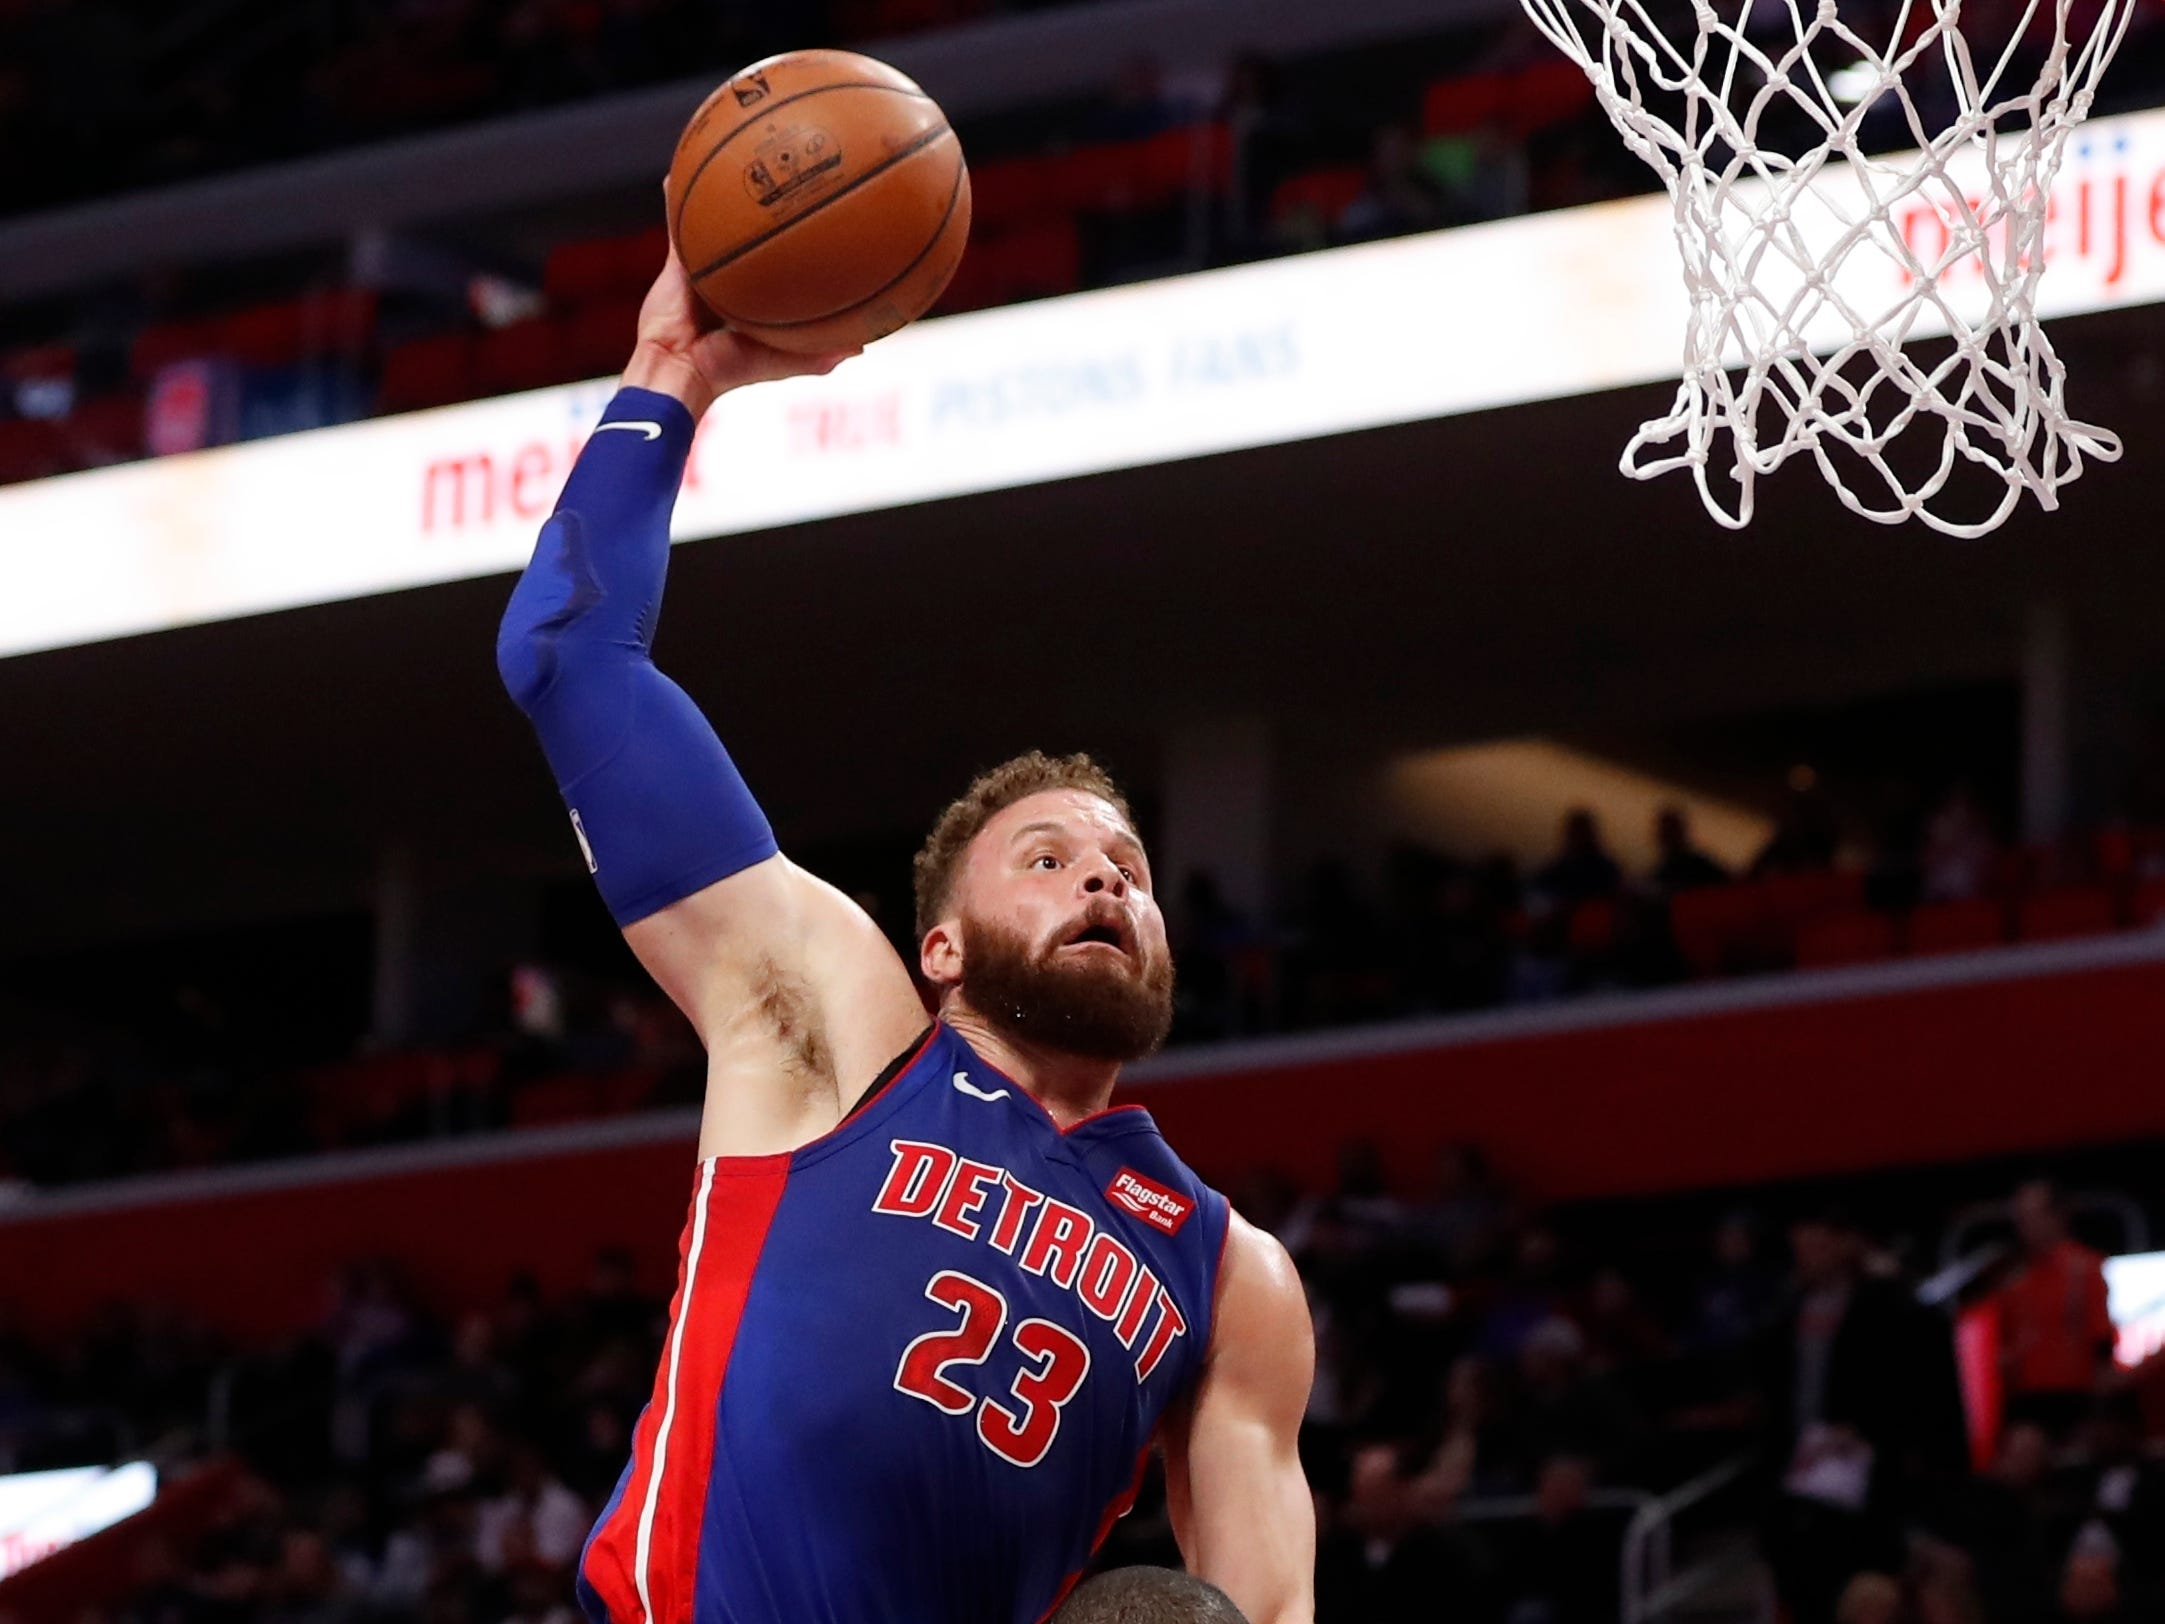 Detroit Pistons forward Blake Griffin (23) goes for a dunk over Toronto Raptors center Serge Ibaka (9) during the first half of an NBA basketball game, Sunday, March 3, 2019, in Detroit.